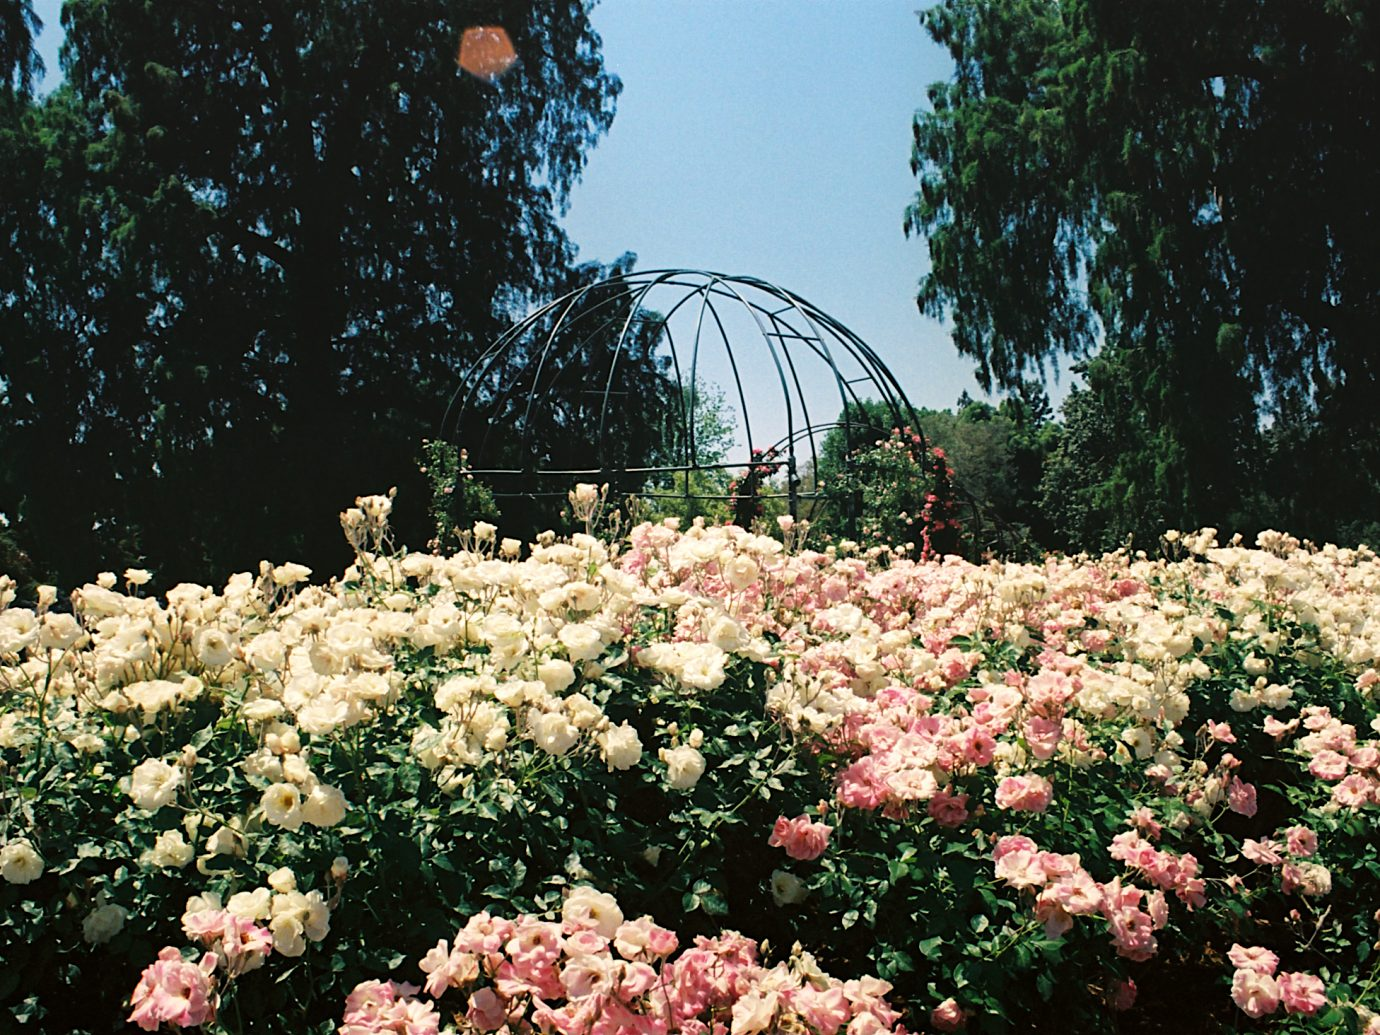 A view of the gazebo at the Huntington Library Rose Garden